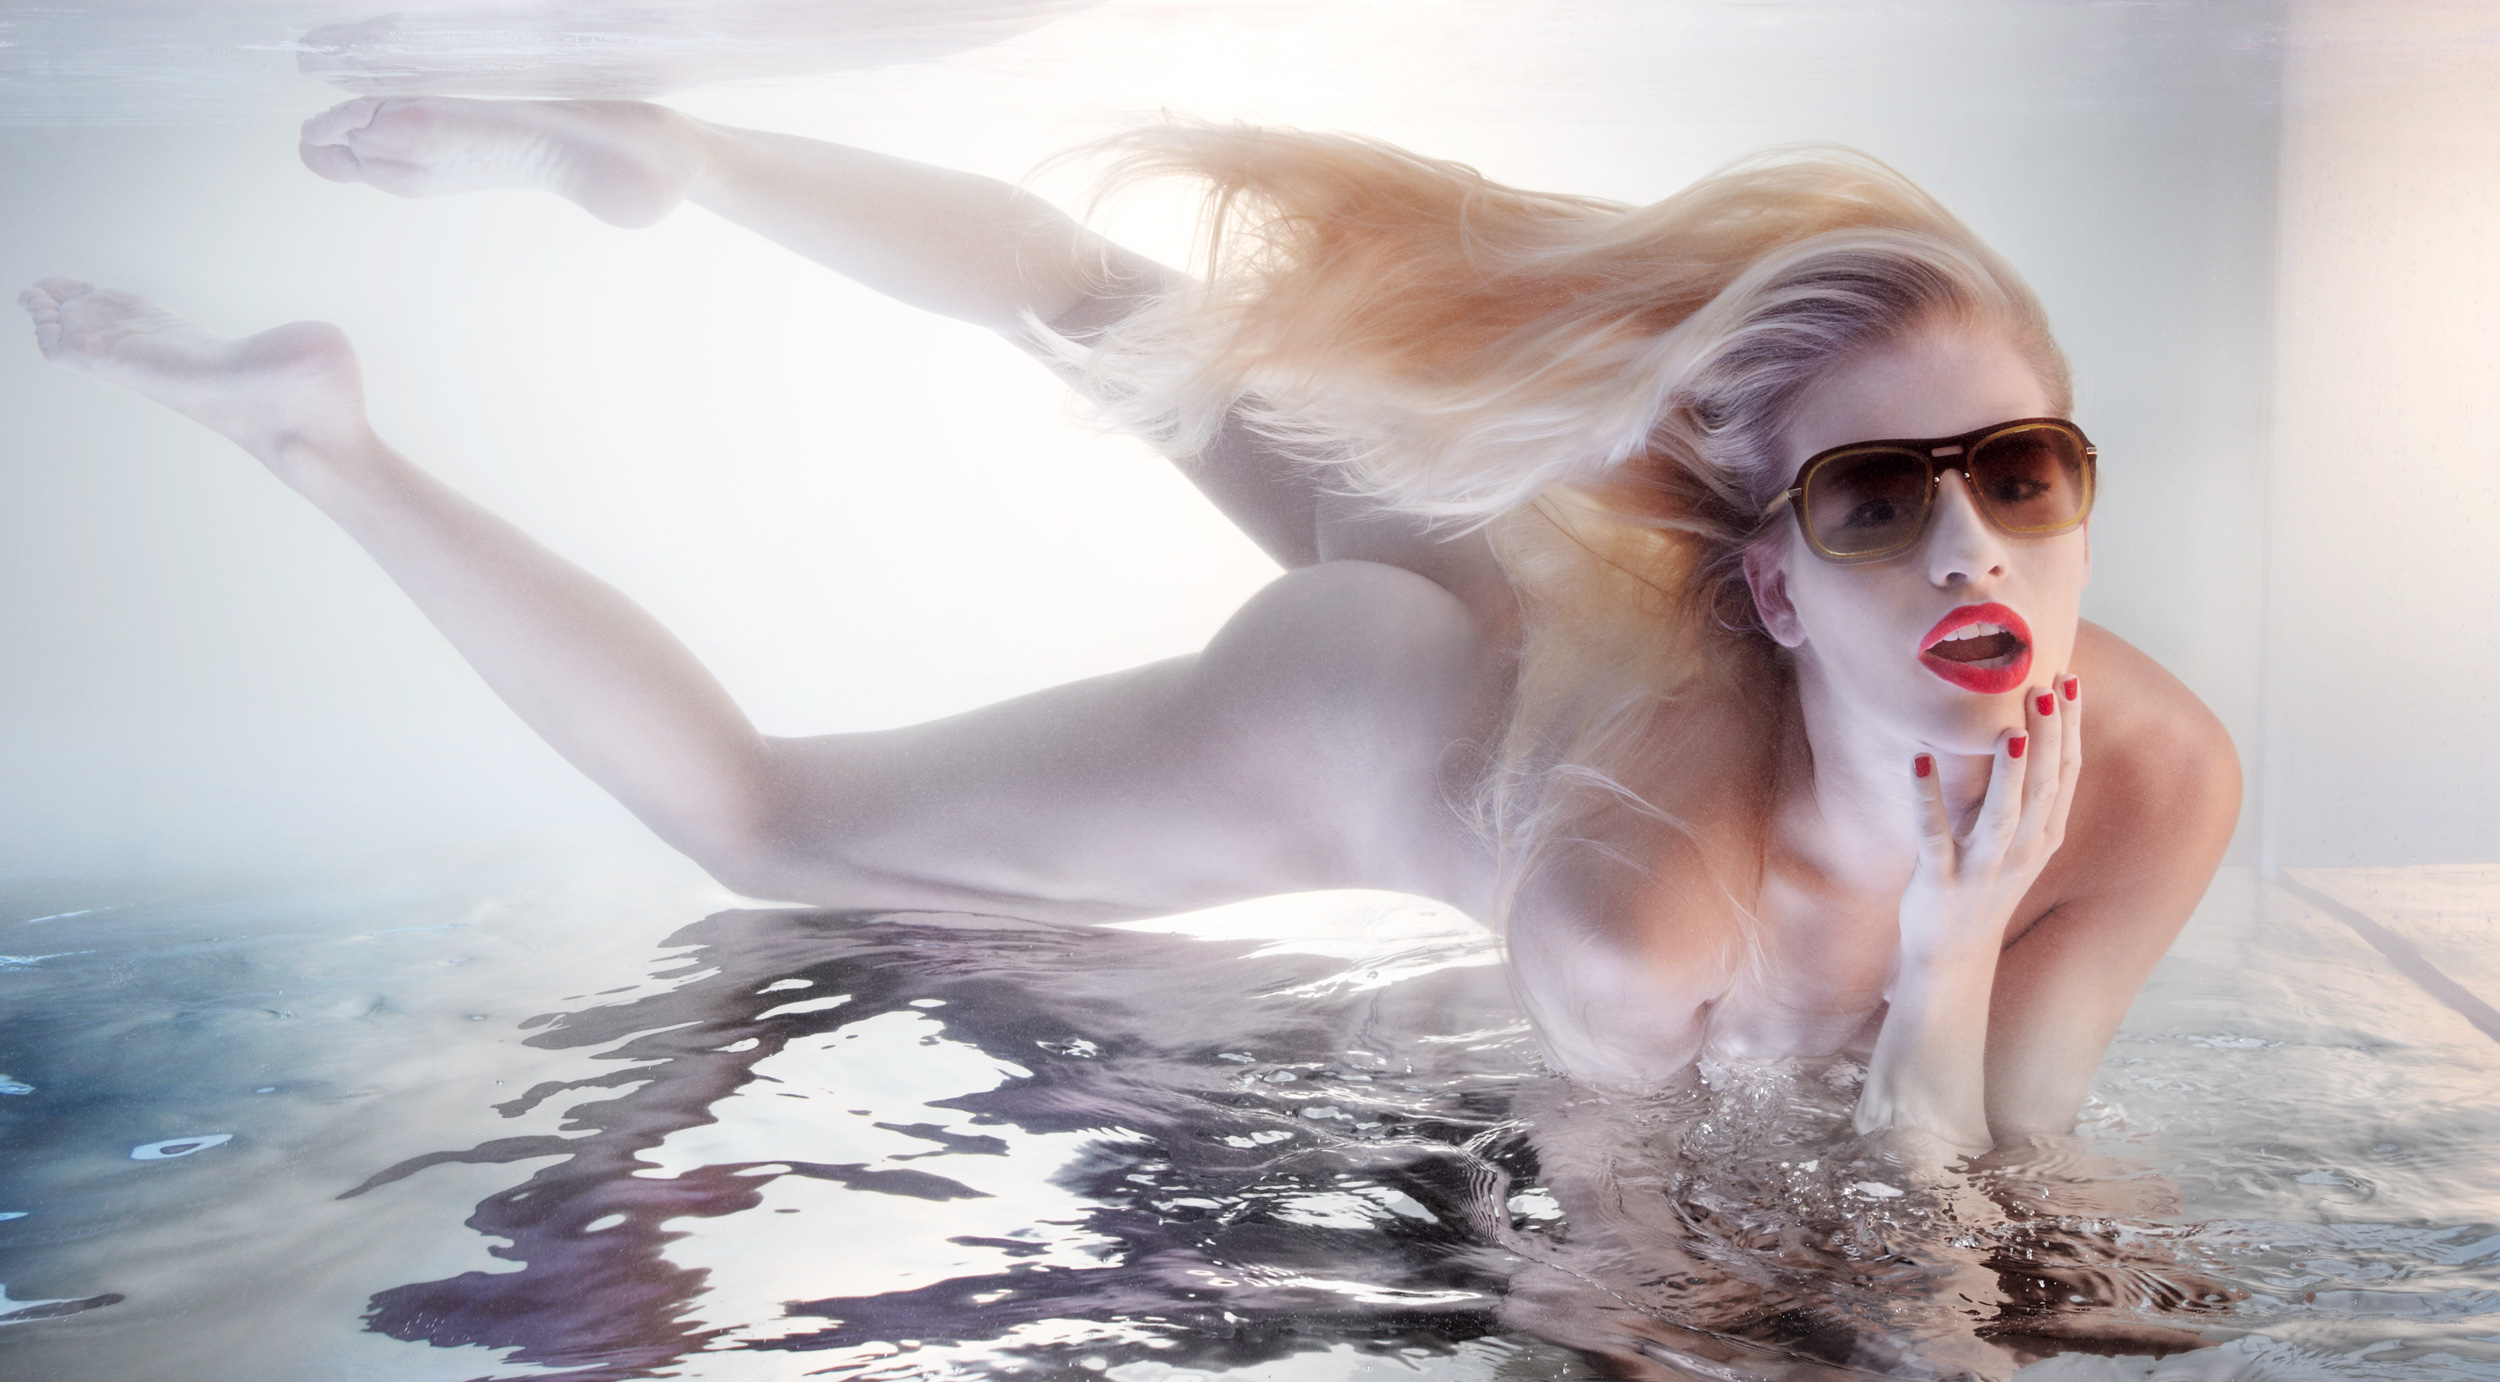 Musilek-Stan-Dior-Sunglasses-Underwater-Product-Photographer-Advertising